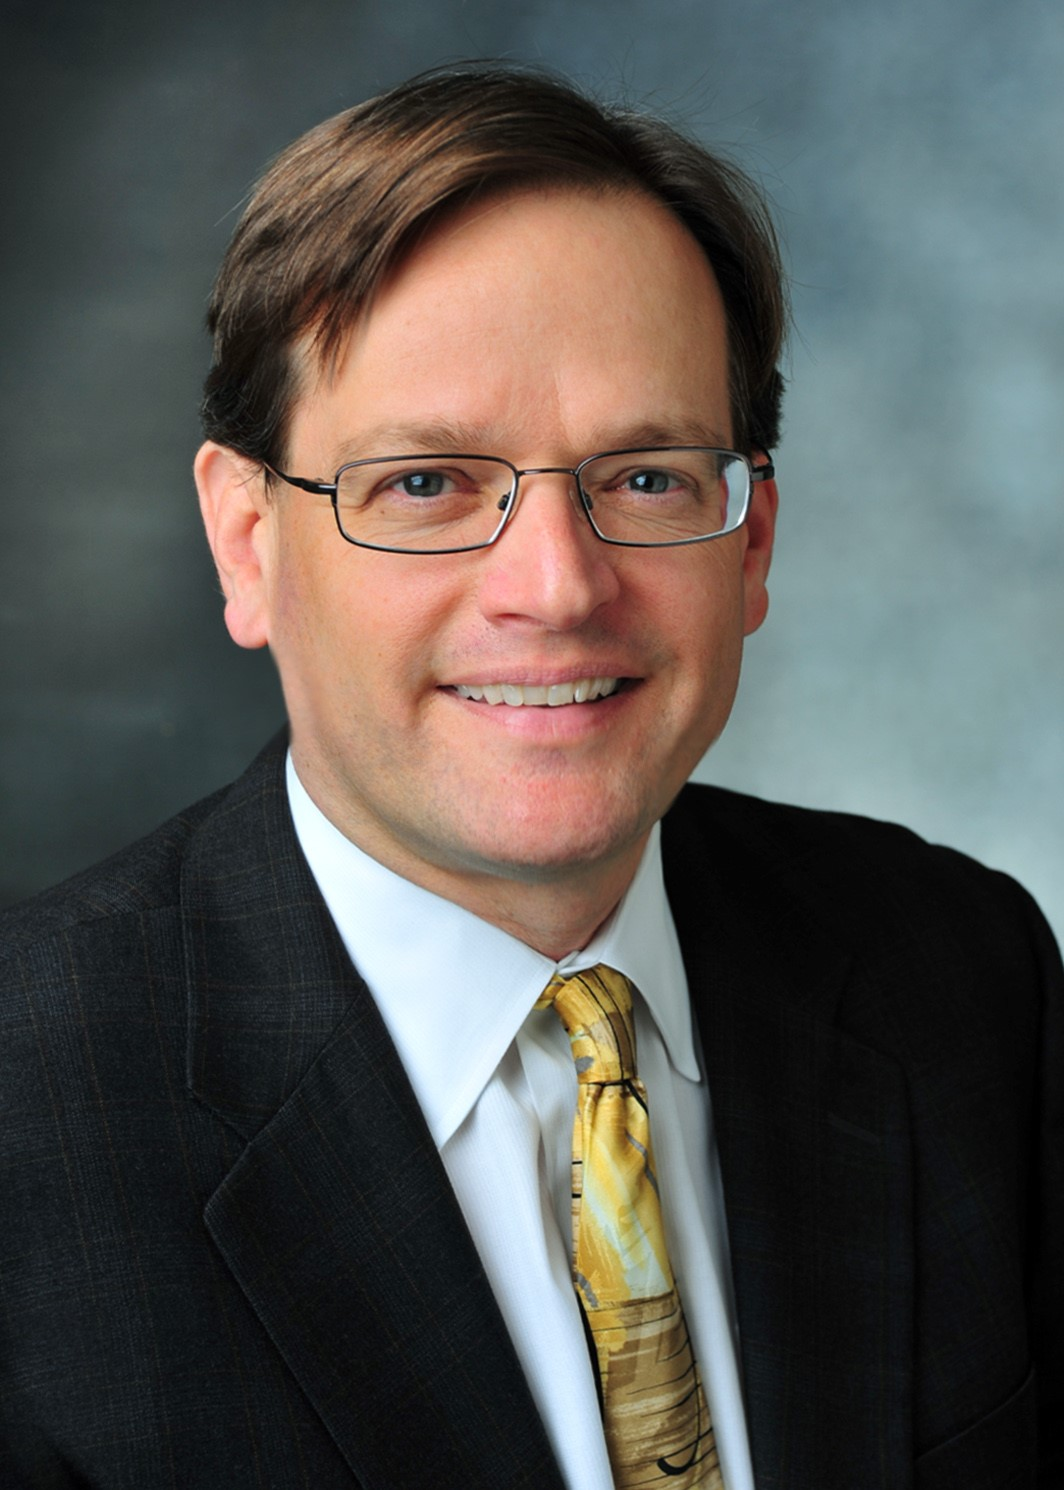 Mary Crowley Cancer Research Welcomes New Chief Executive Officer, Jon Friedenberg